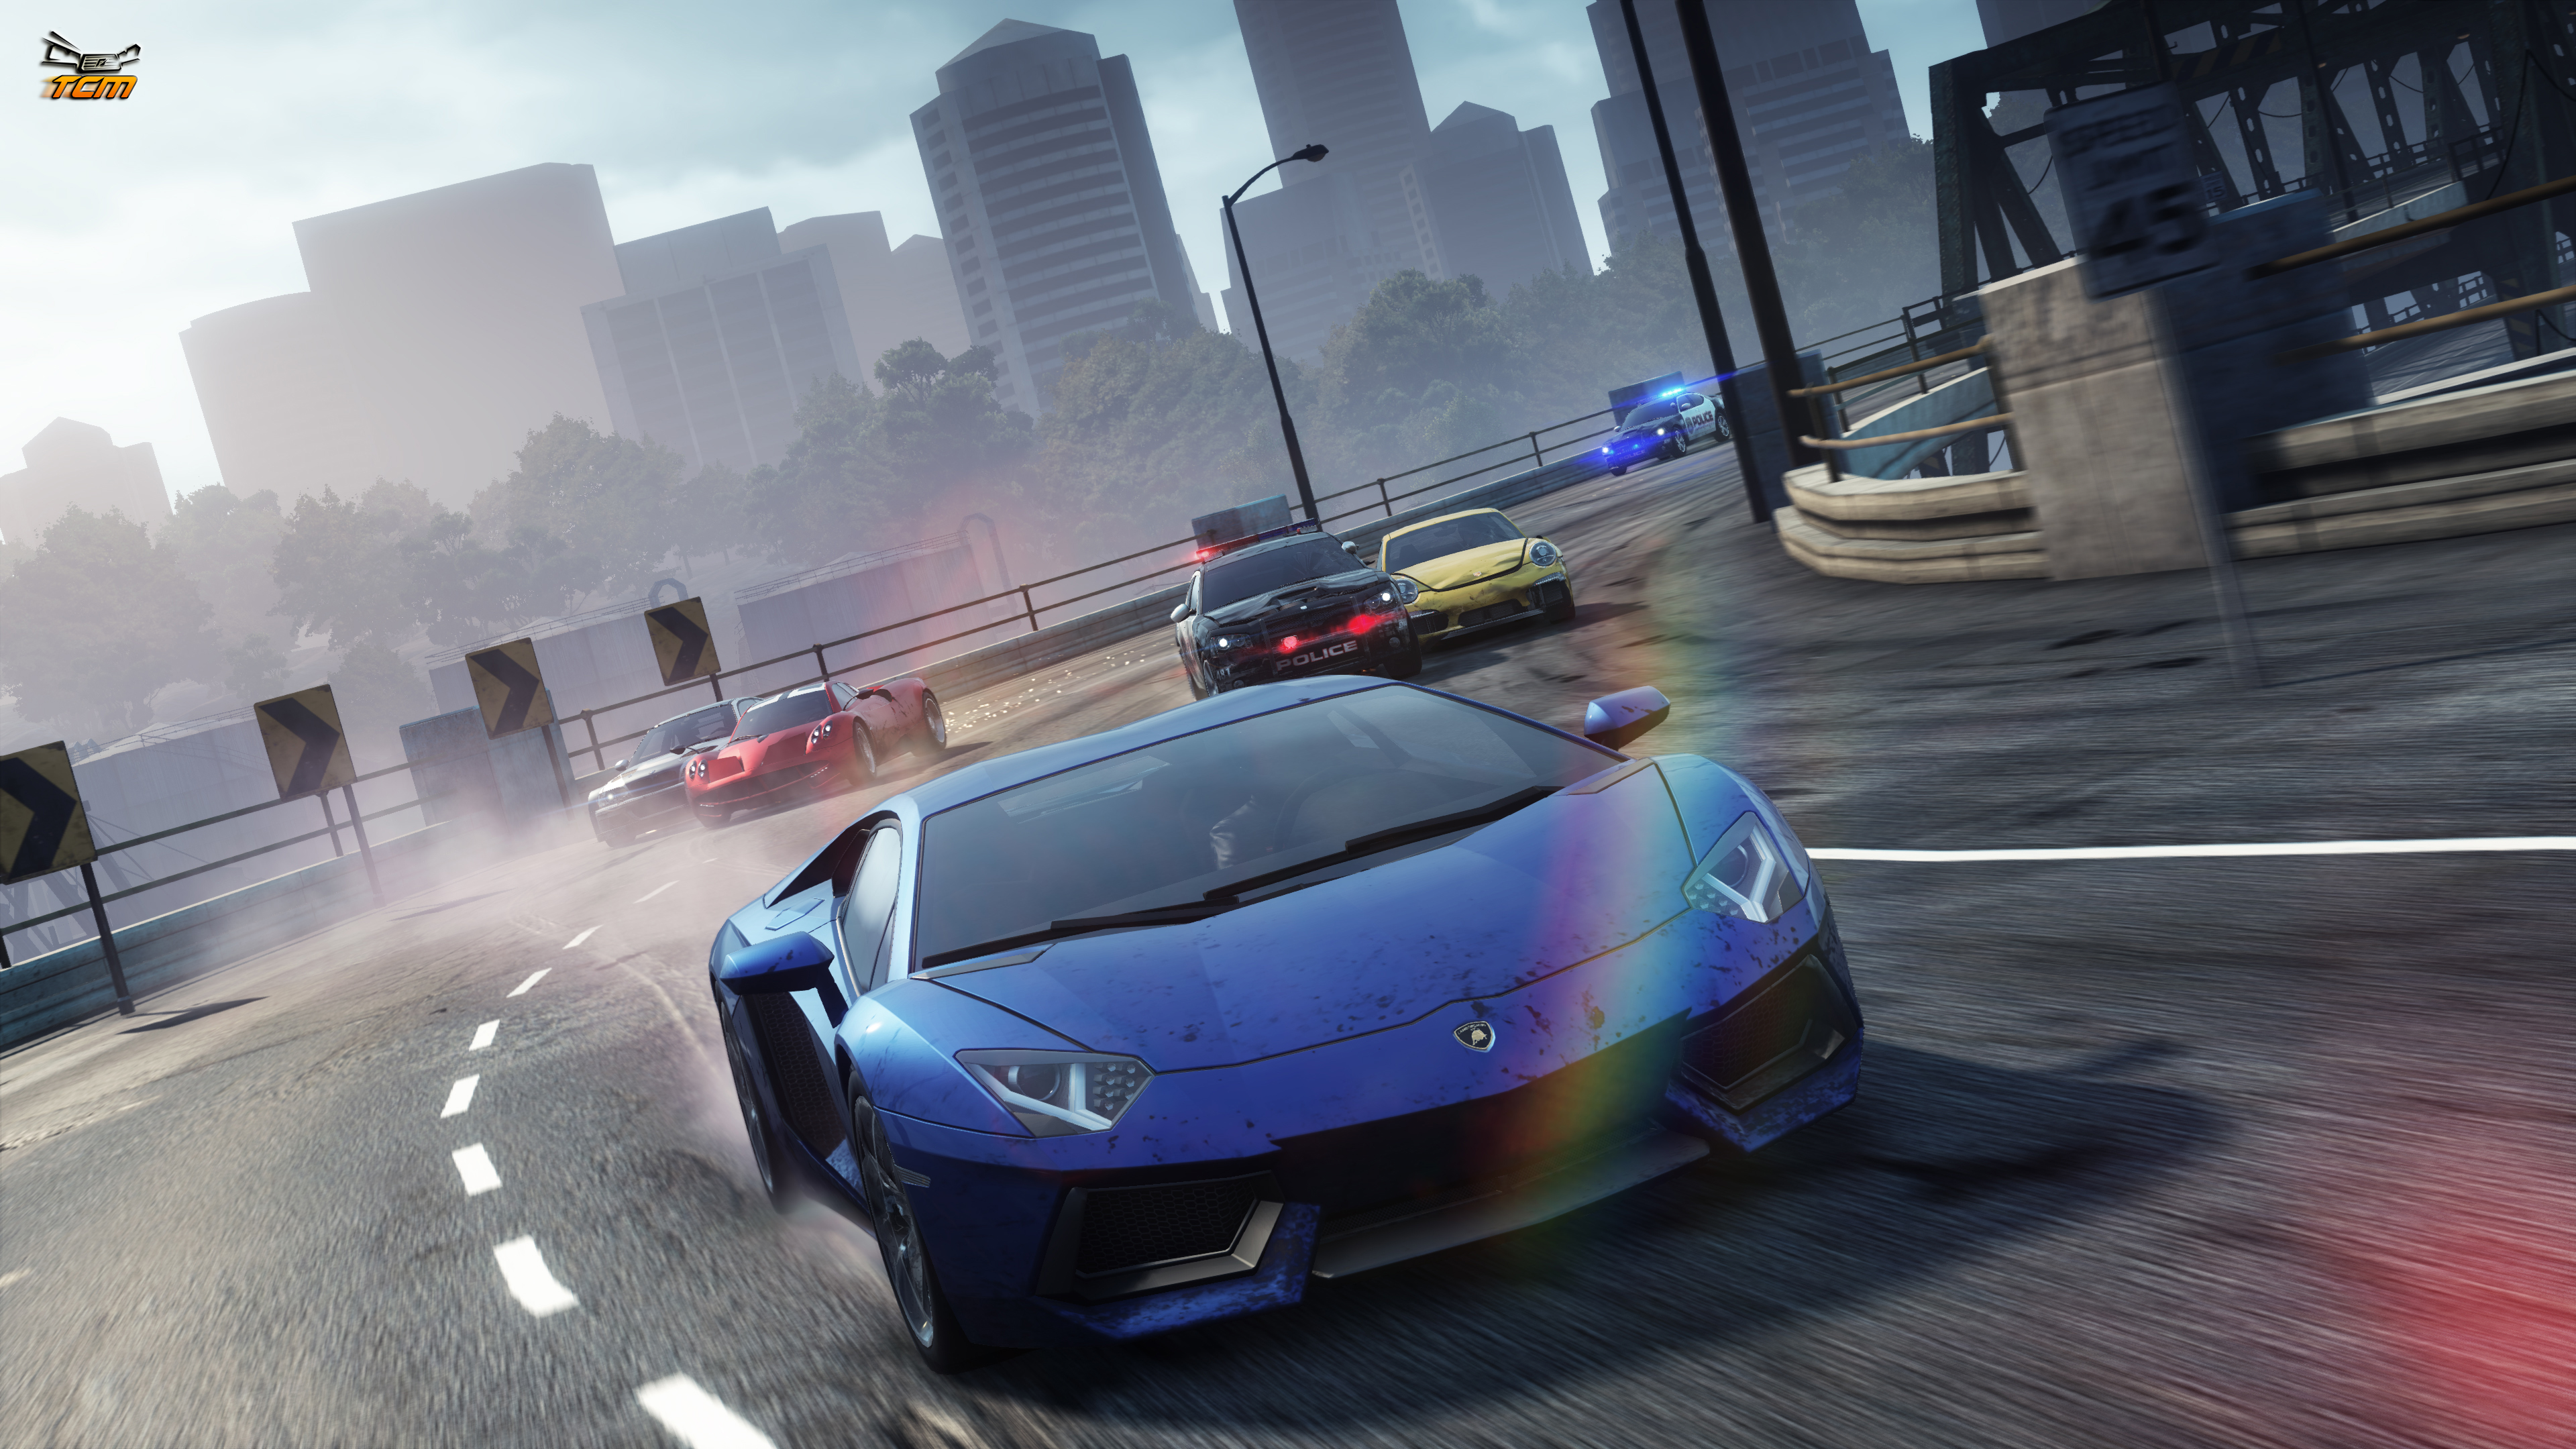 Need for speed most wanted 4k ultra hd wallpaper for Need for speed wallpaper